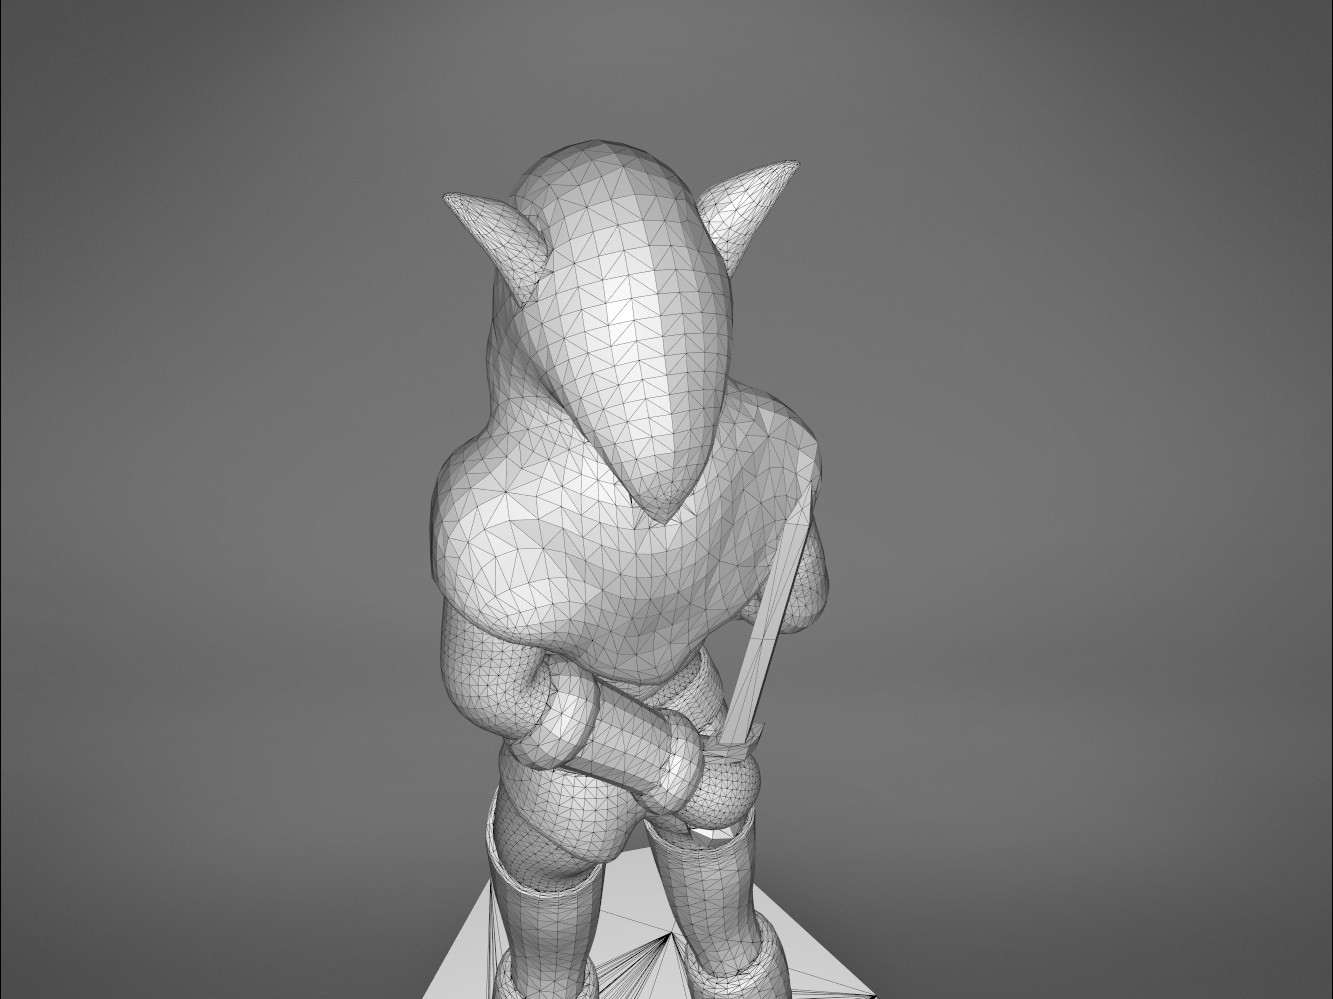 Rogue_2-detail_5.477.jpg Download STL file ELF ROGUE FEMALE CHARACTER GAME FIGURES 3D print model • 3D printer object, 3D-mon